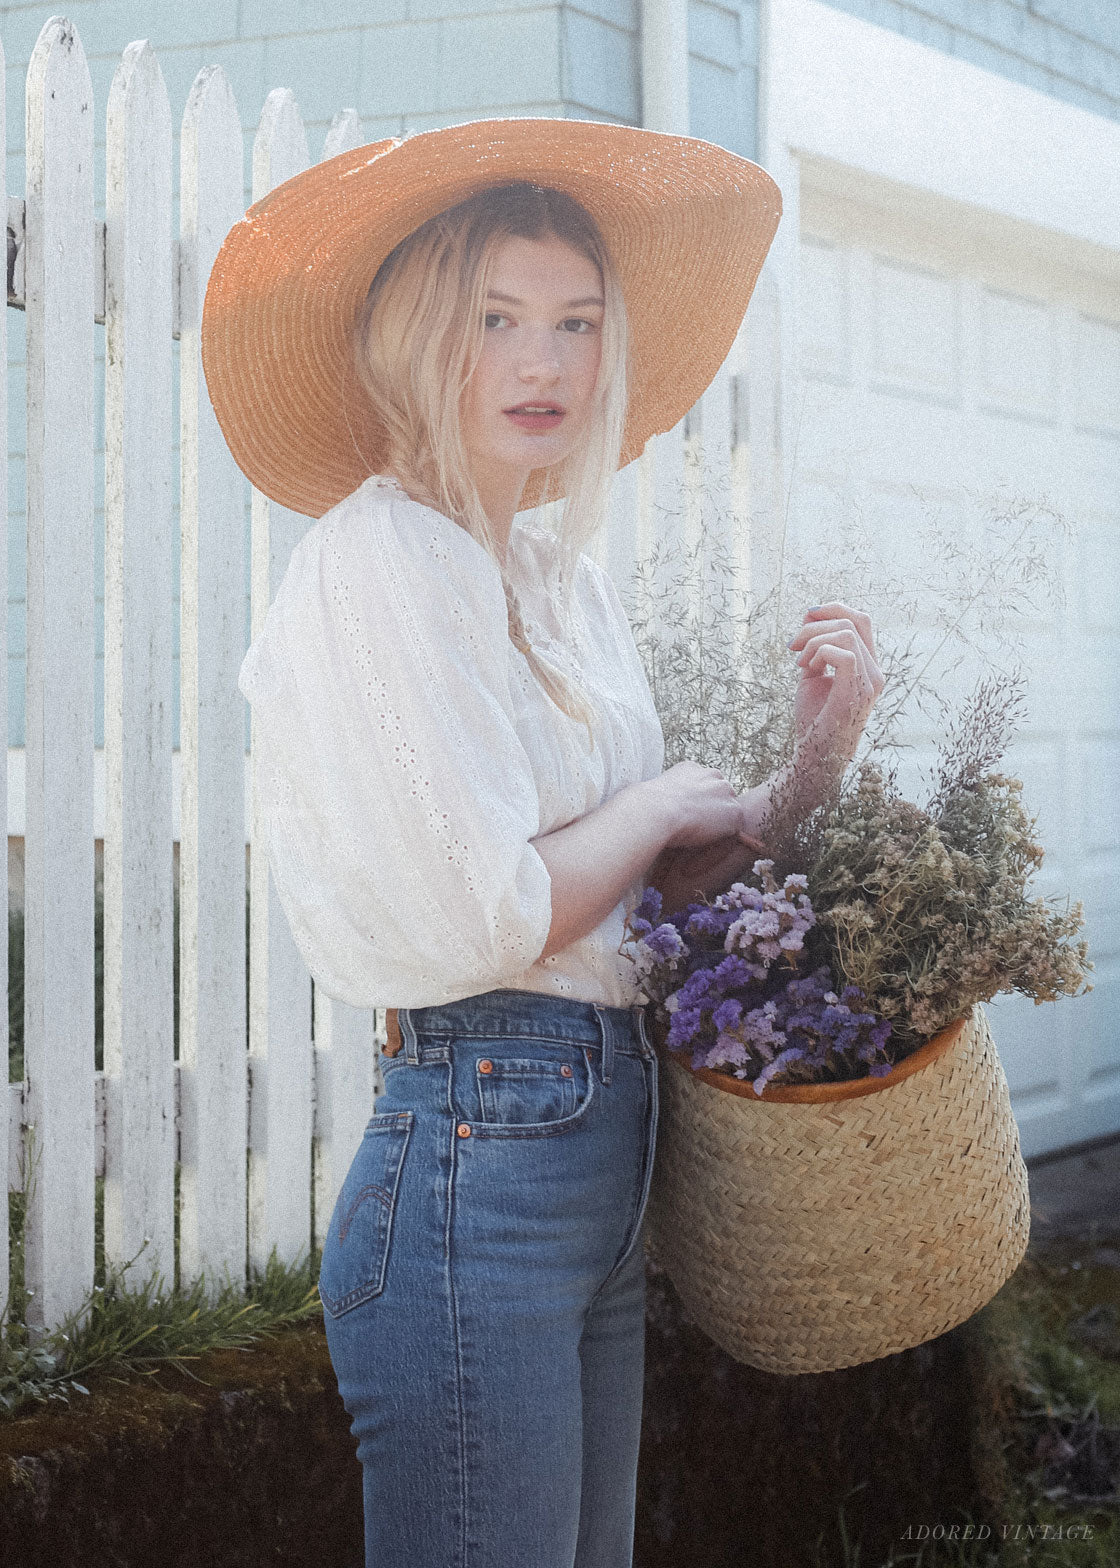 Adored Vintage / Feminine, Timeless, and Romantic Country Clothing Inspired By Vintage